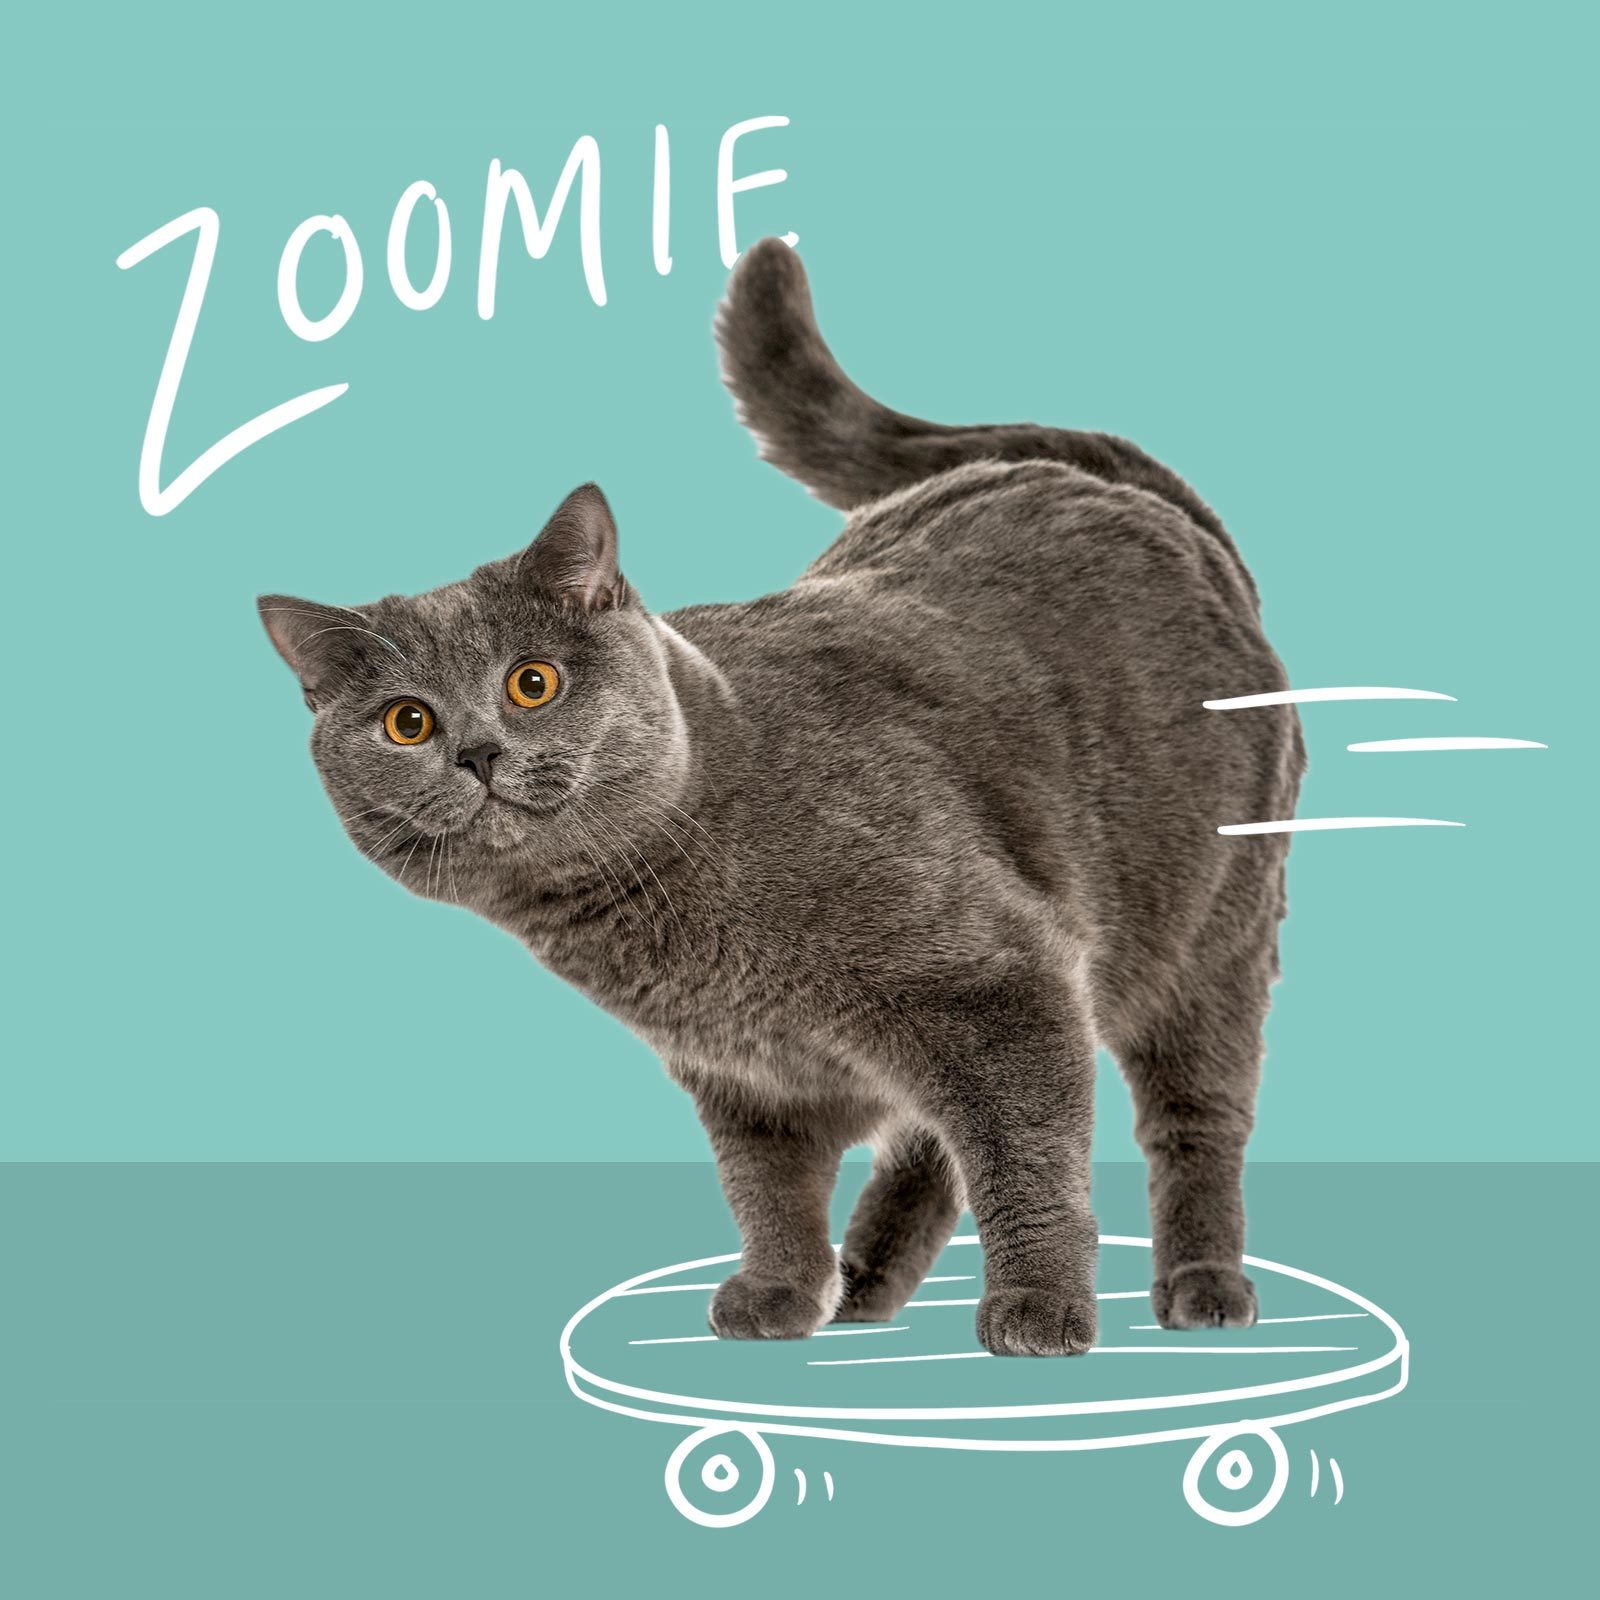 Cat riding a skateboard named Zoomie